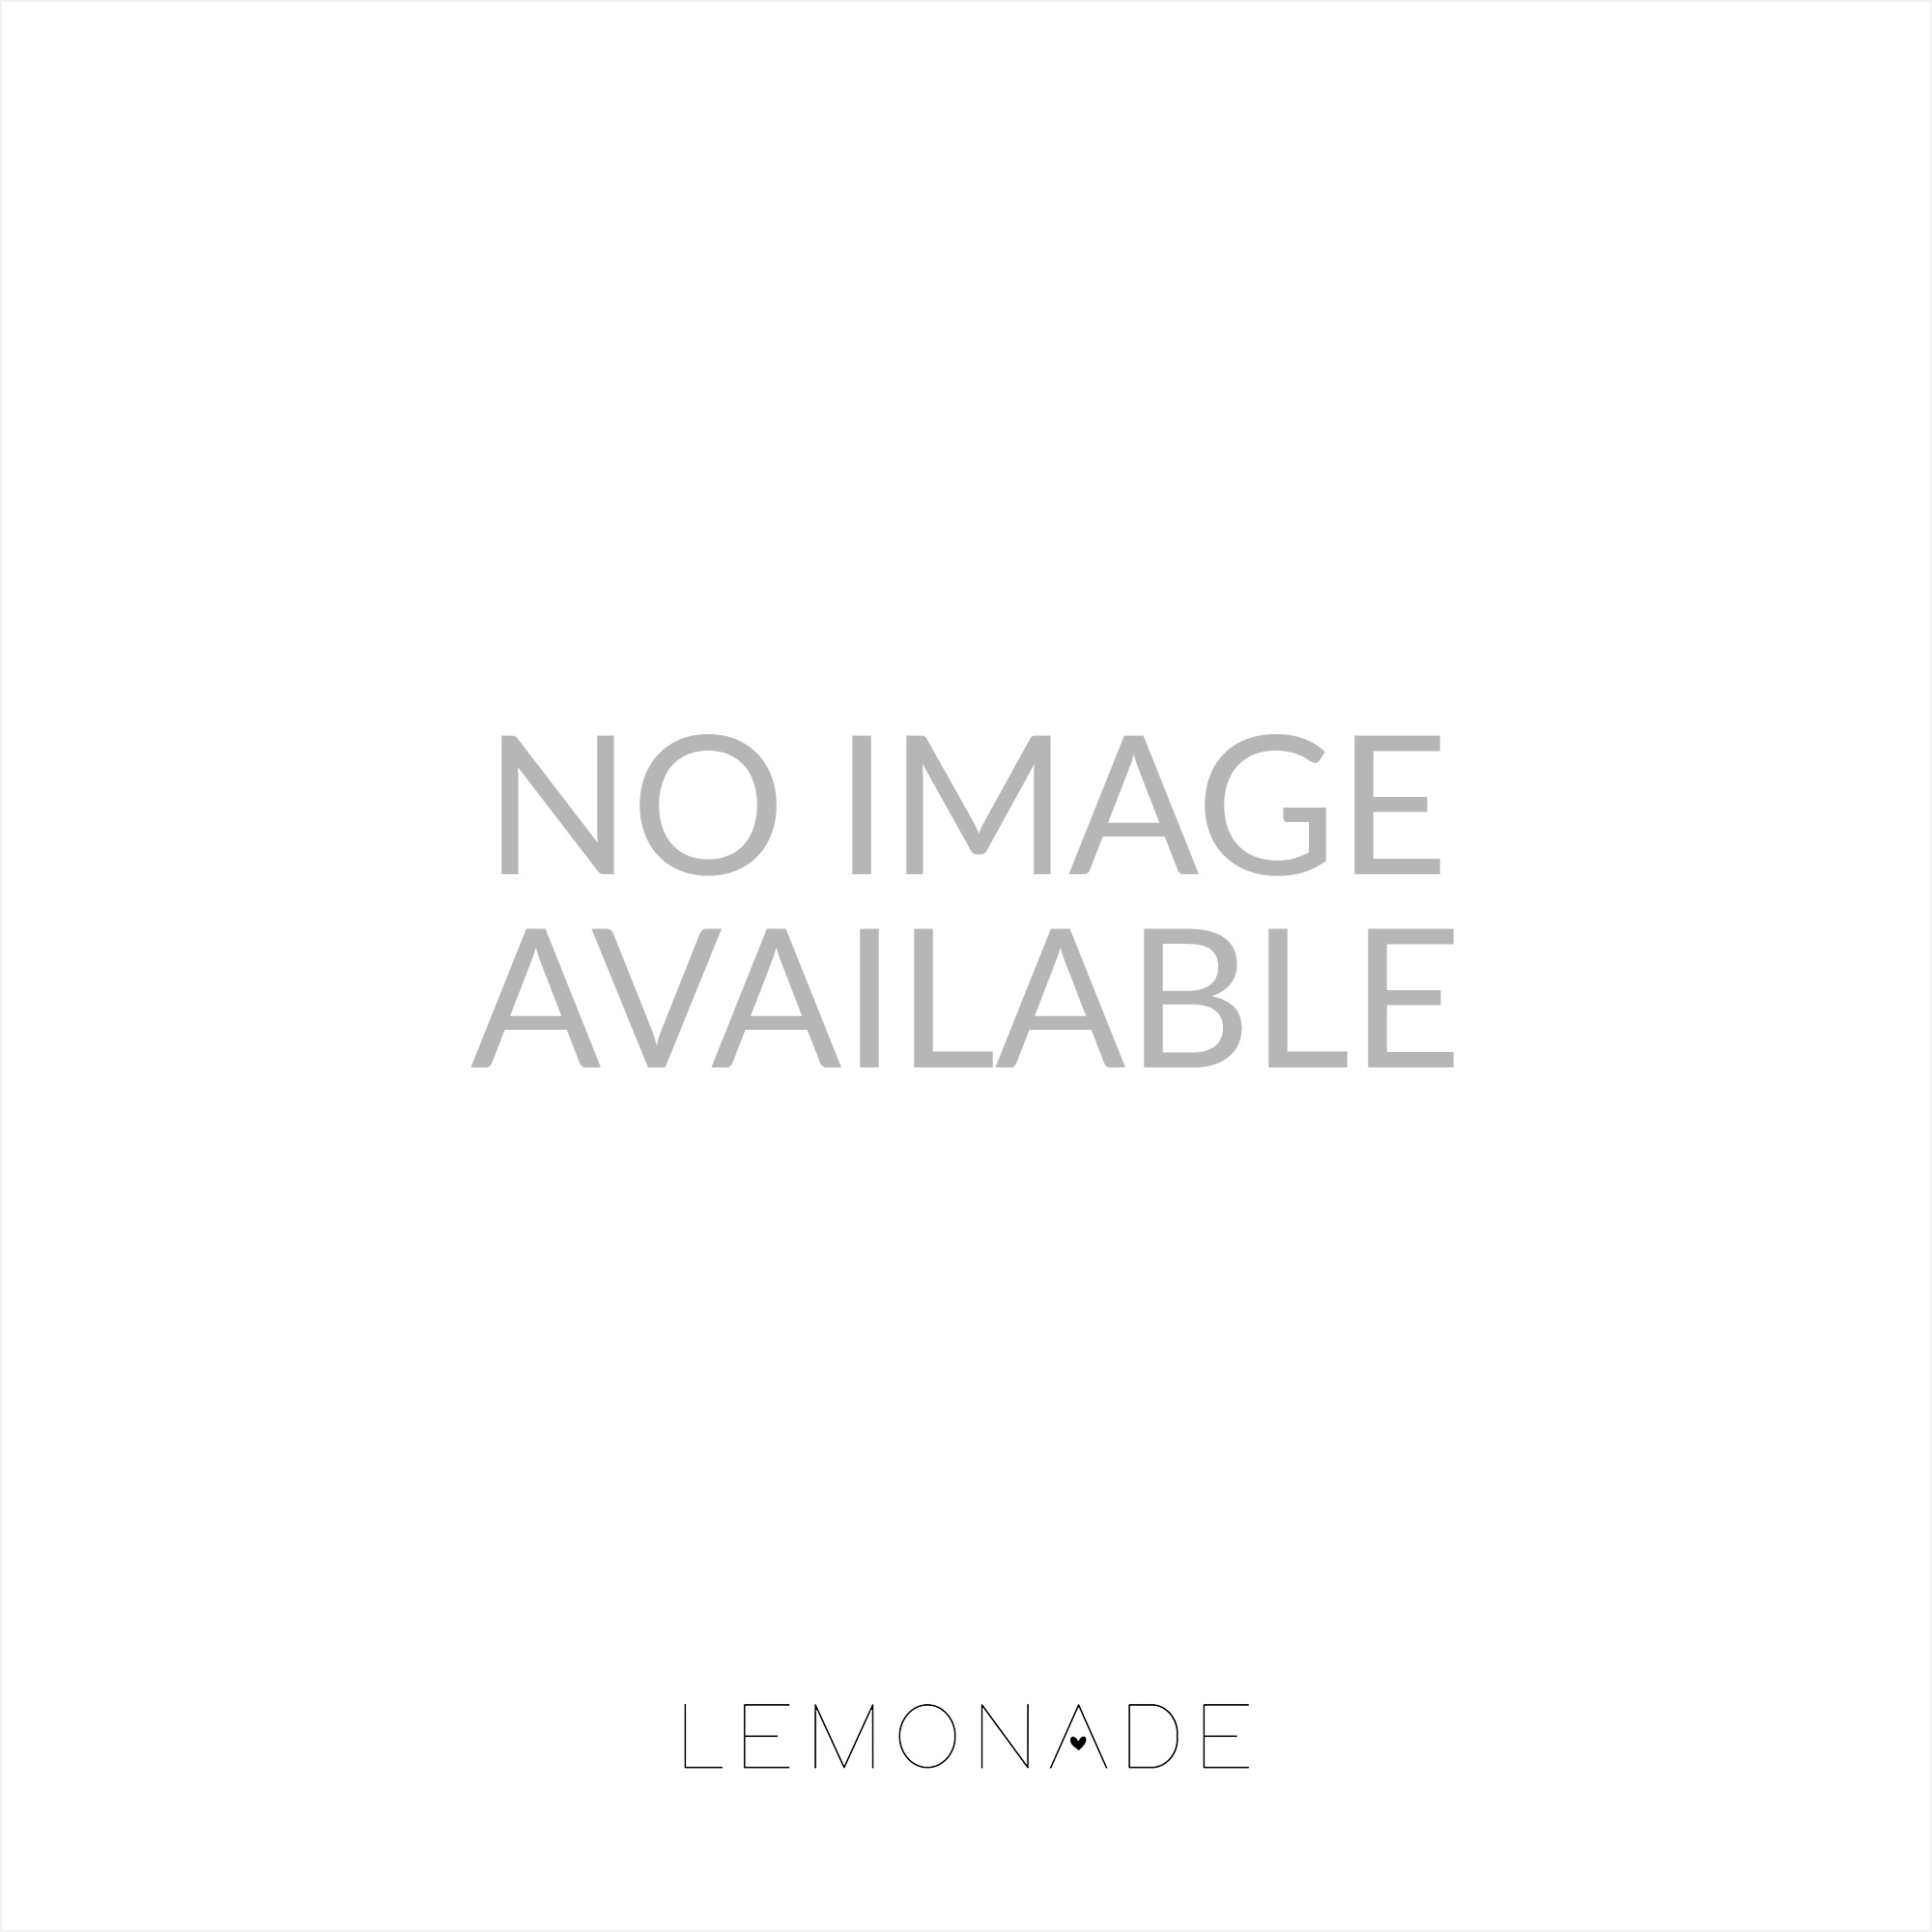 Lemonade Bling Crystal Umbrella Turquoise